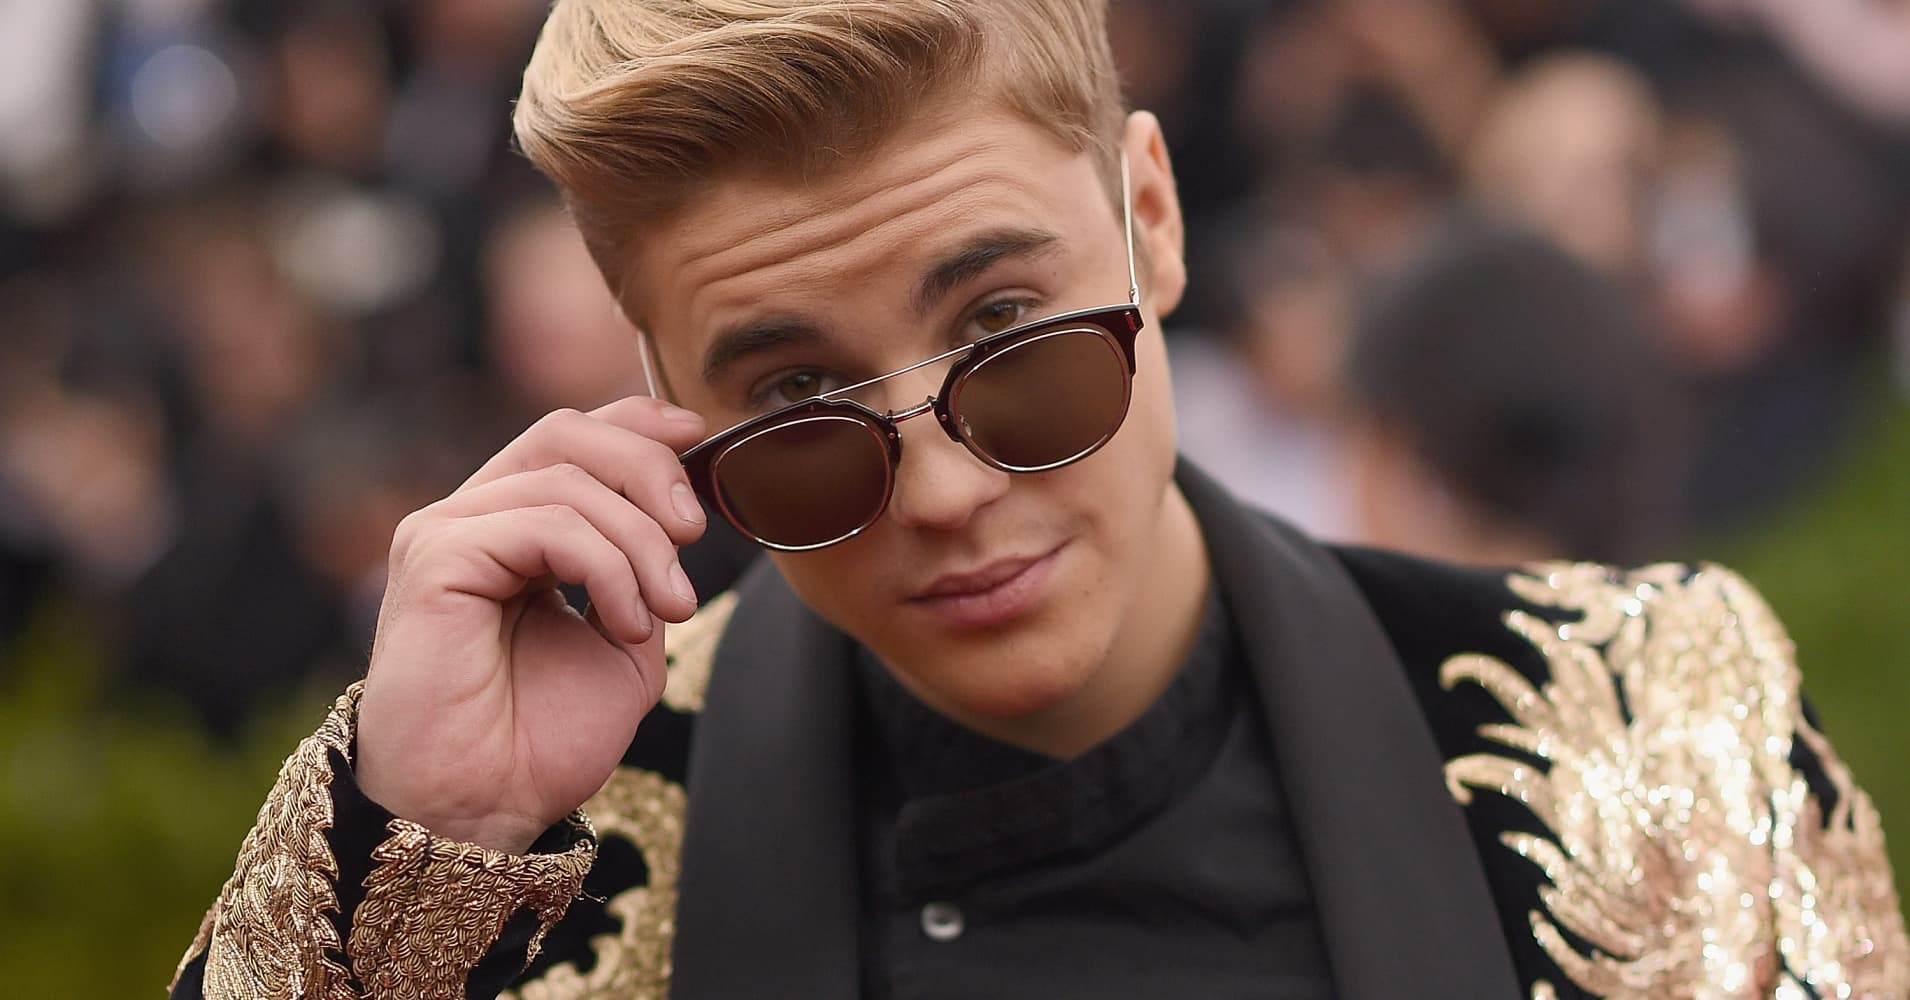 An Investor Behind Justin Bieber And Uber Reveals What Makes A Great